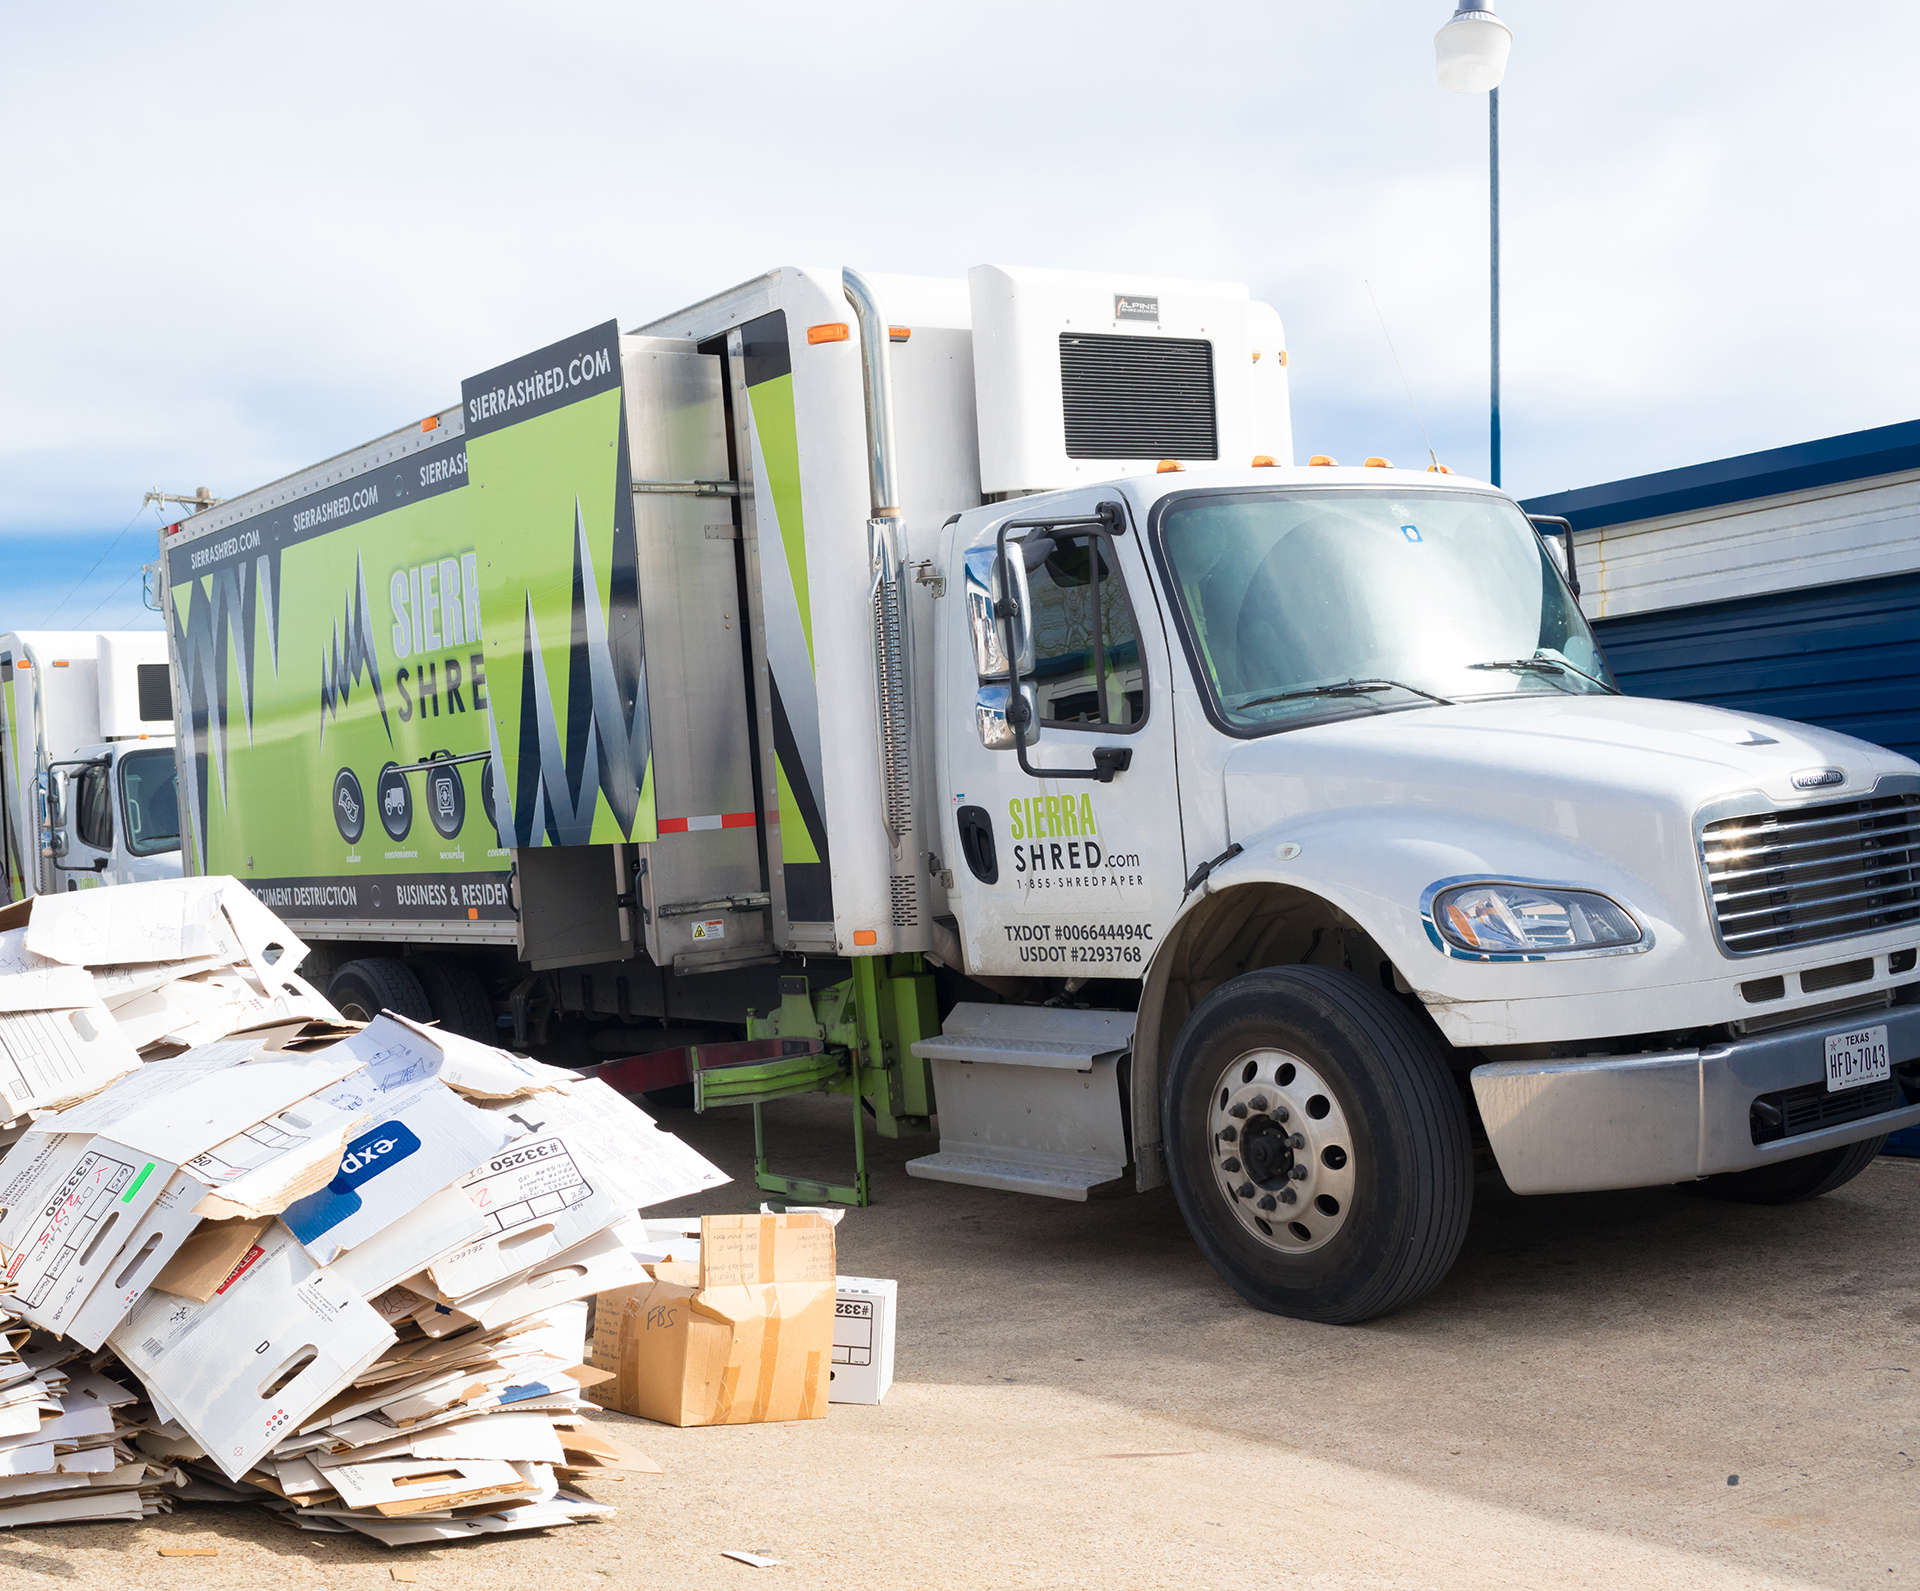 Sierra Shred trucks with papers